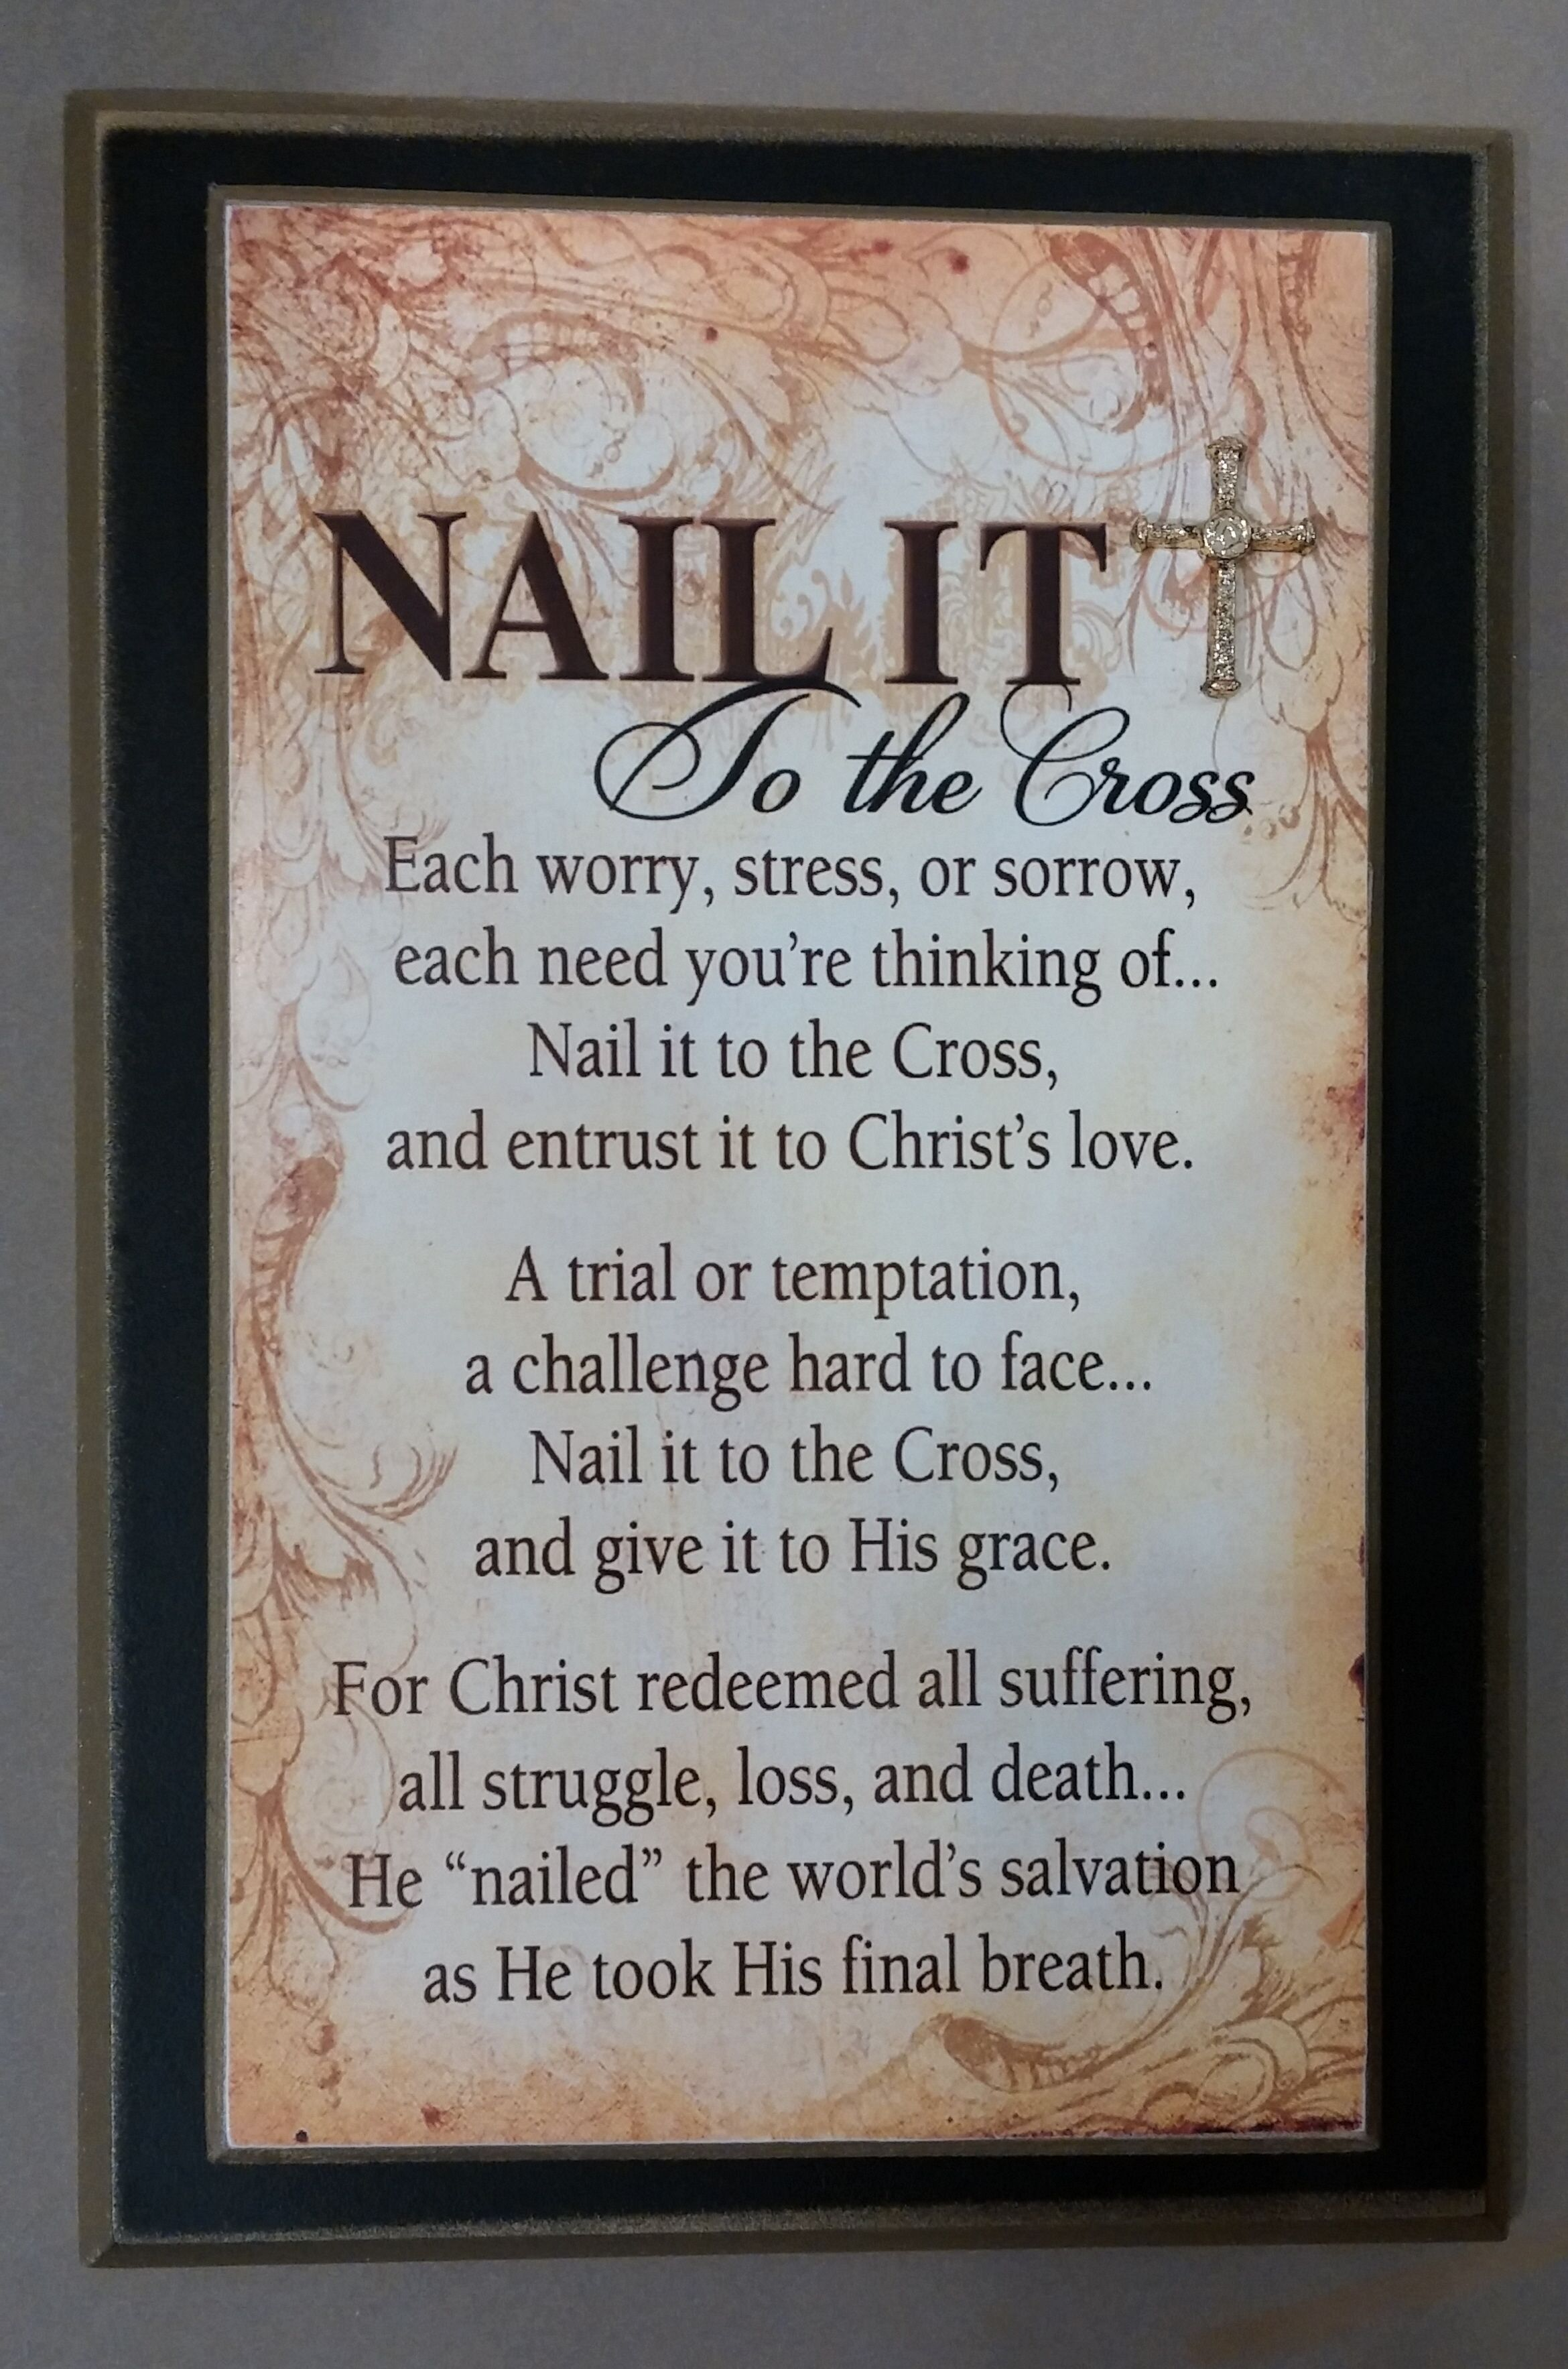 Are you a worrier? Read the words on this Nail it to the cross ...